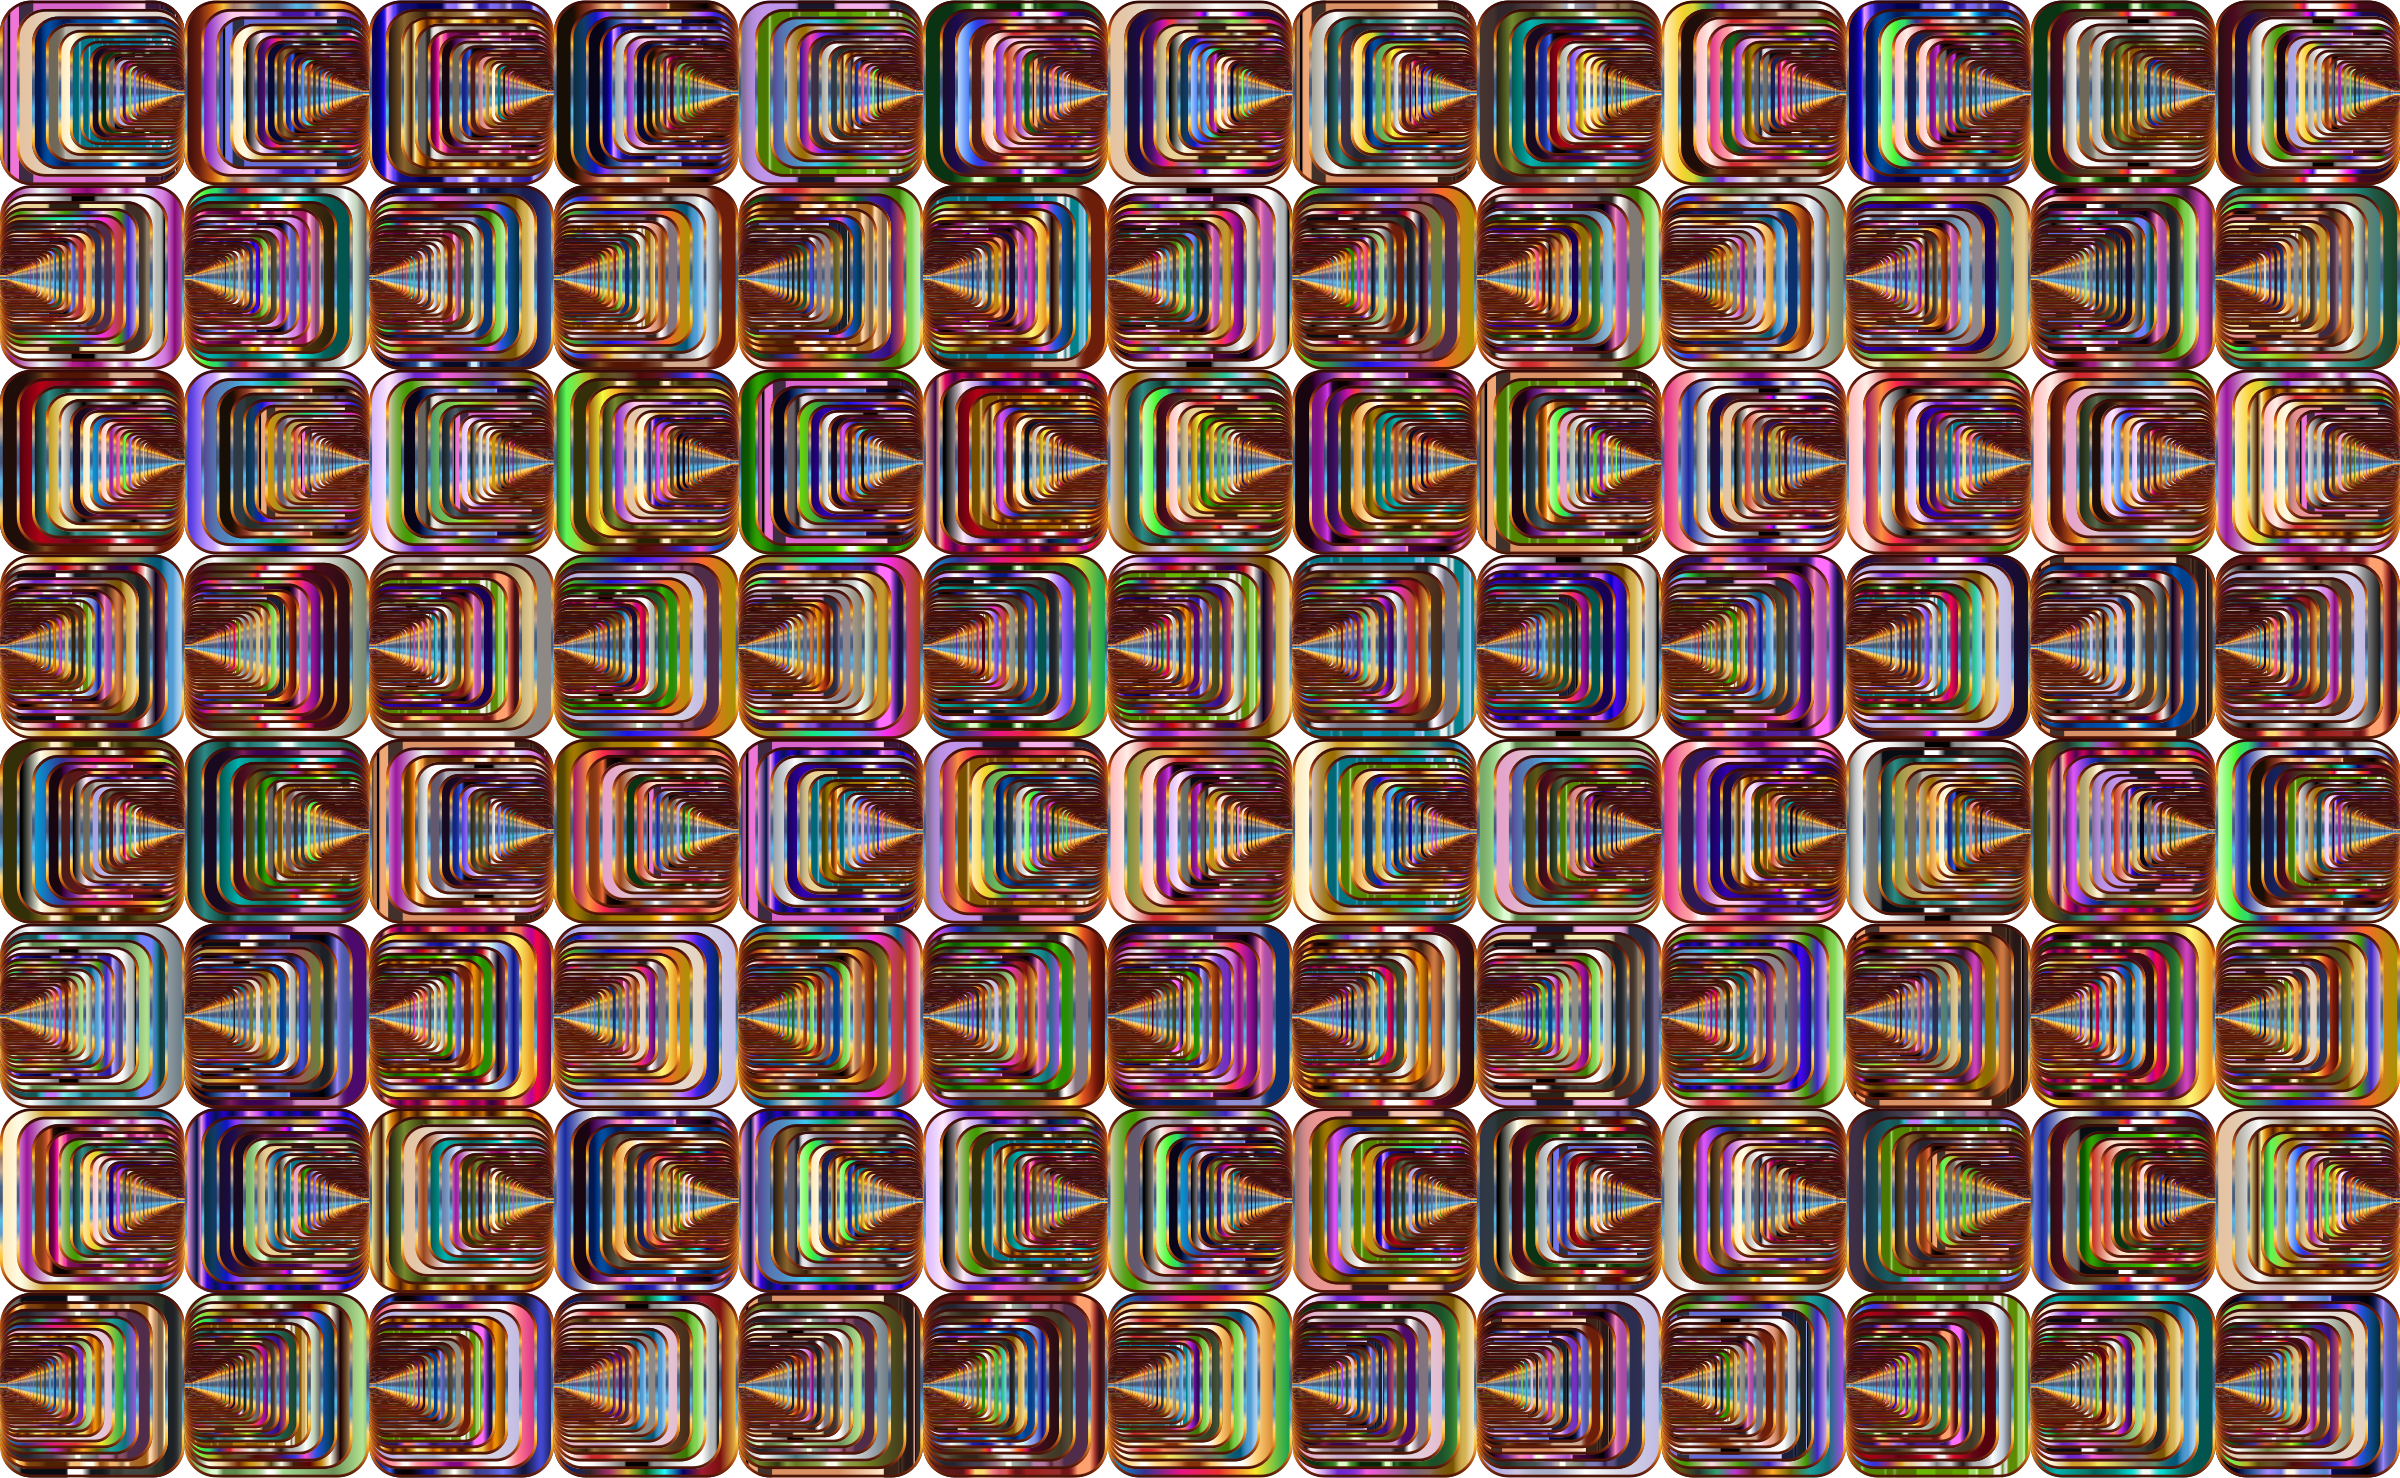 Prismatic Perspective Illusion 2 Pattern 4 Variation 3 by GDJ